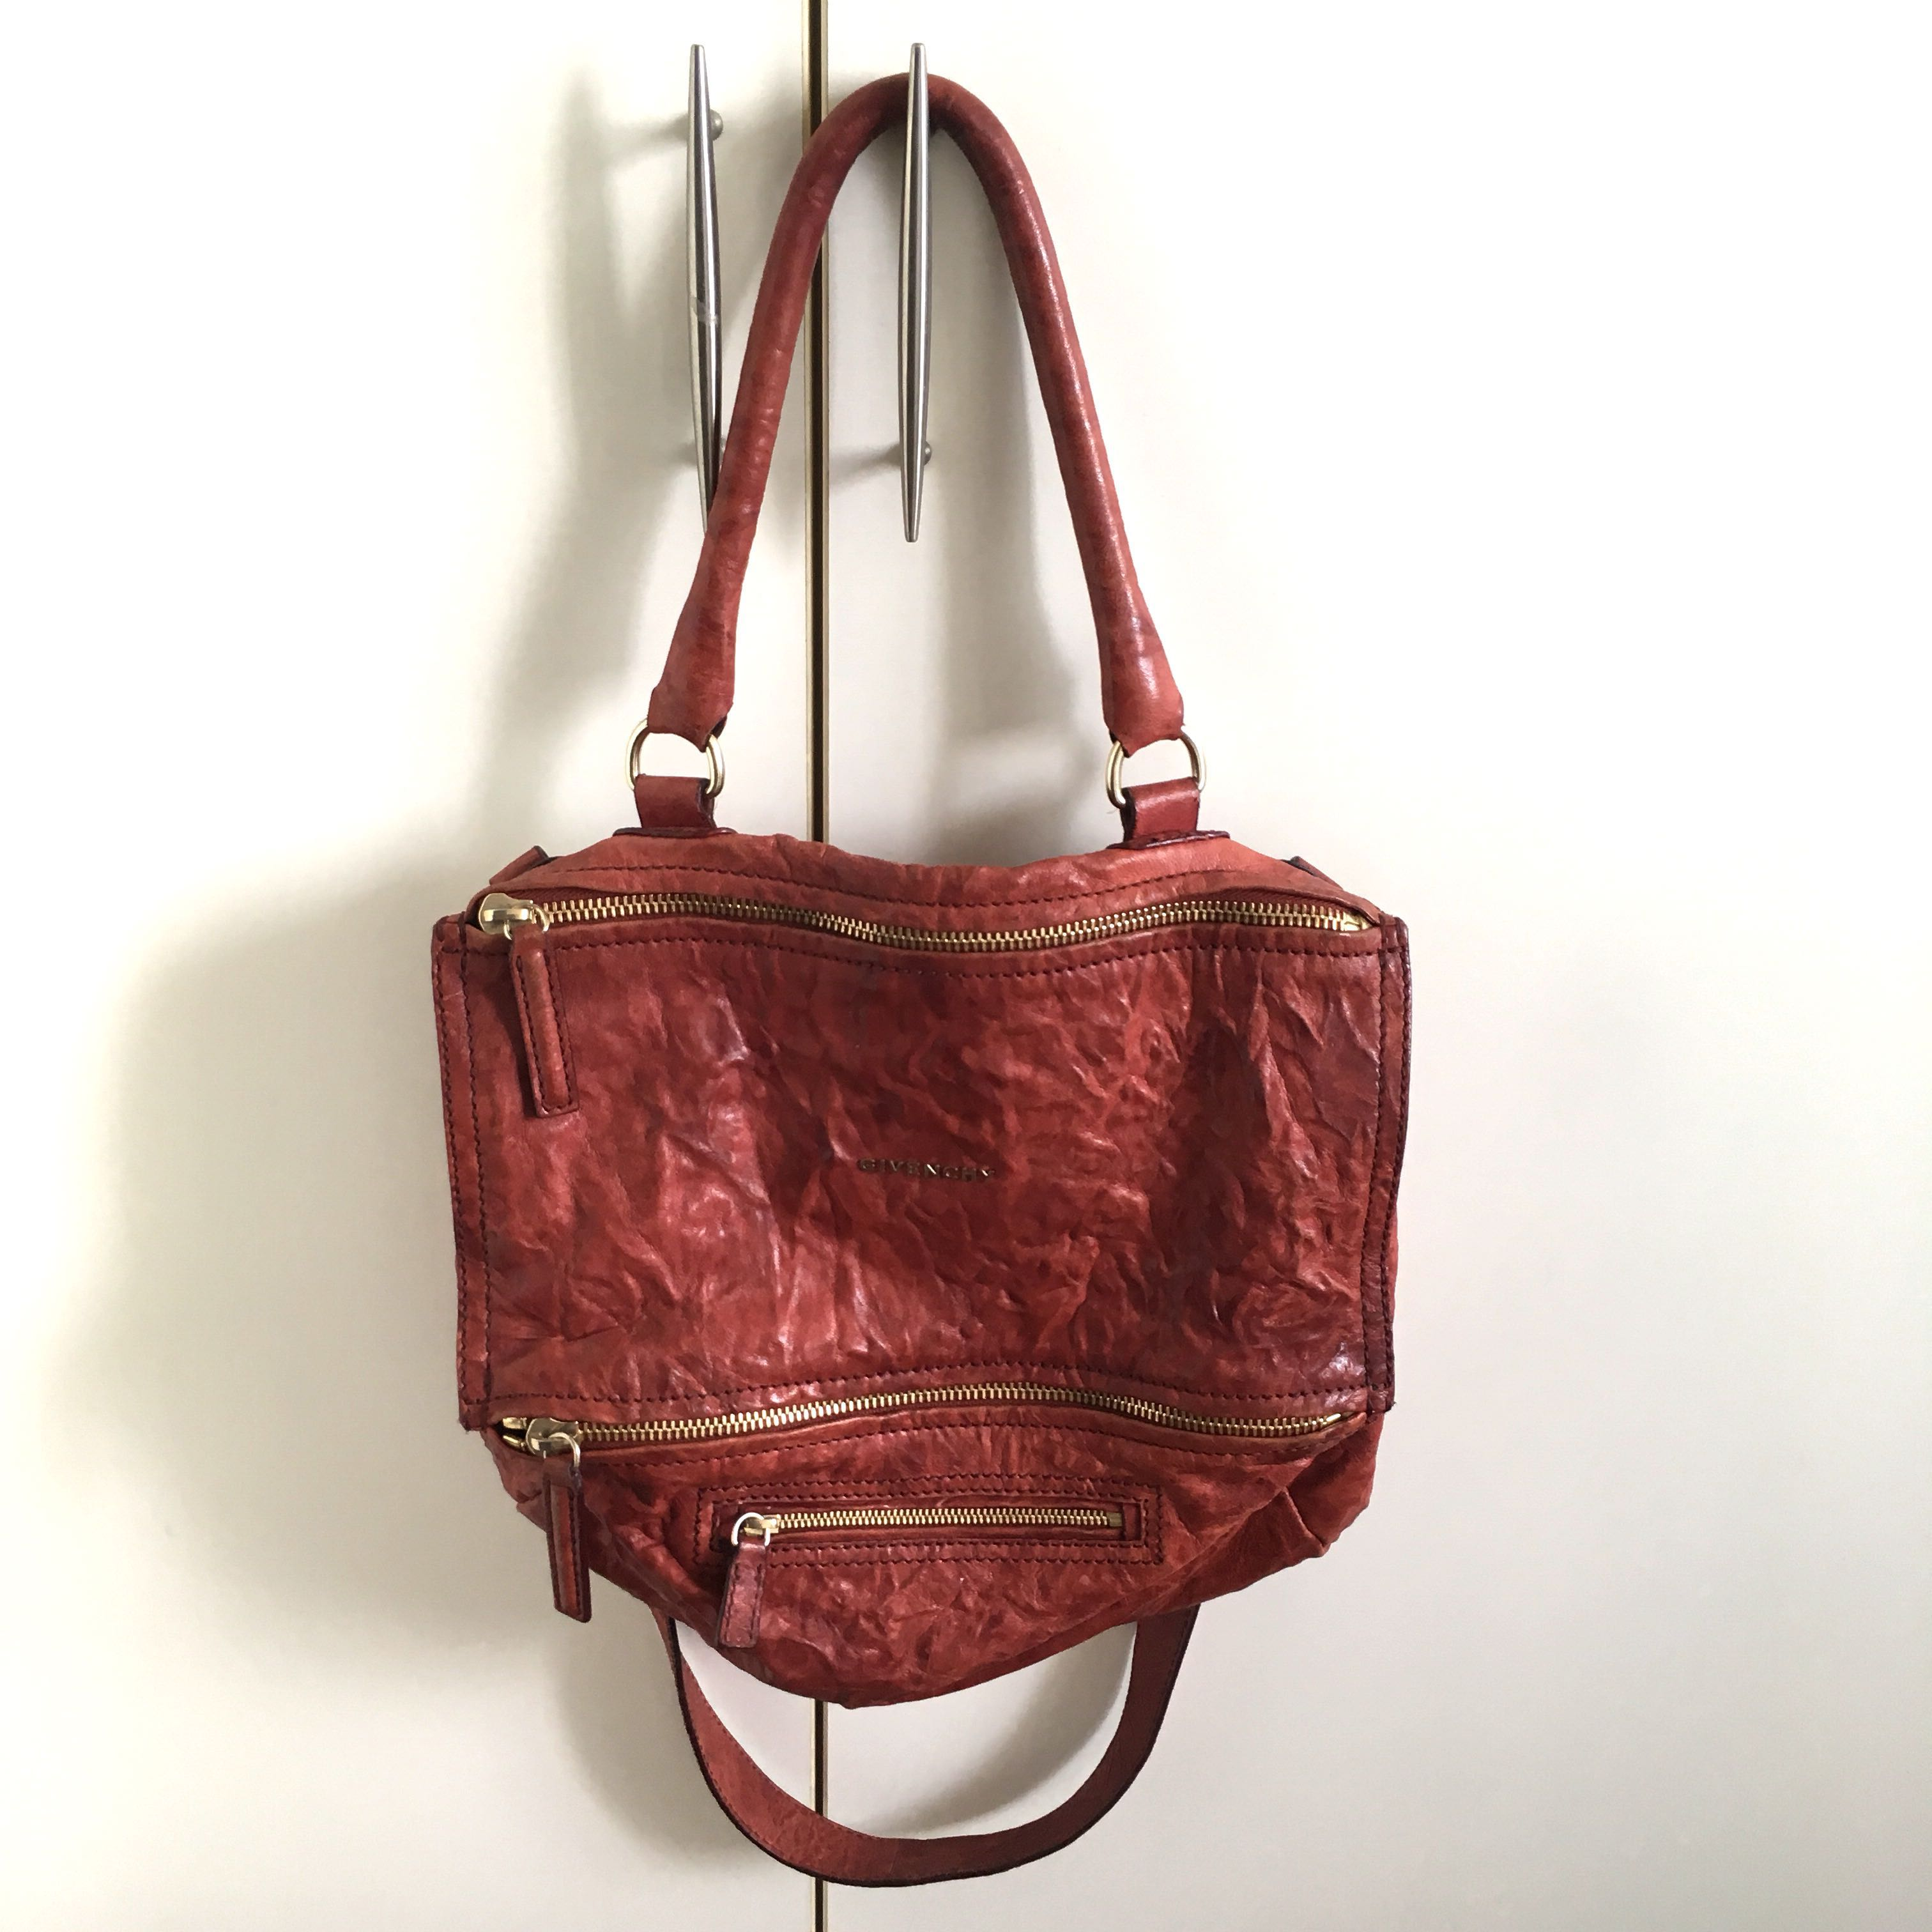 348fd33ab42 Givenchy Pandora Medium in Brick Red, Luxury, Bags   Wallets, Handbags on  Carousell